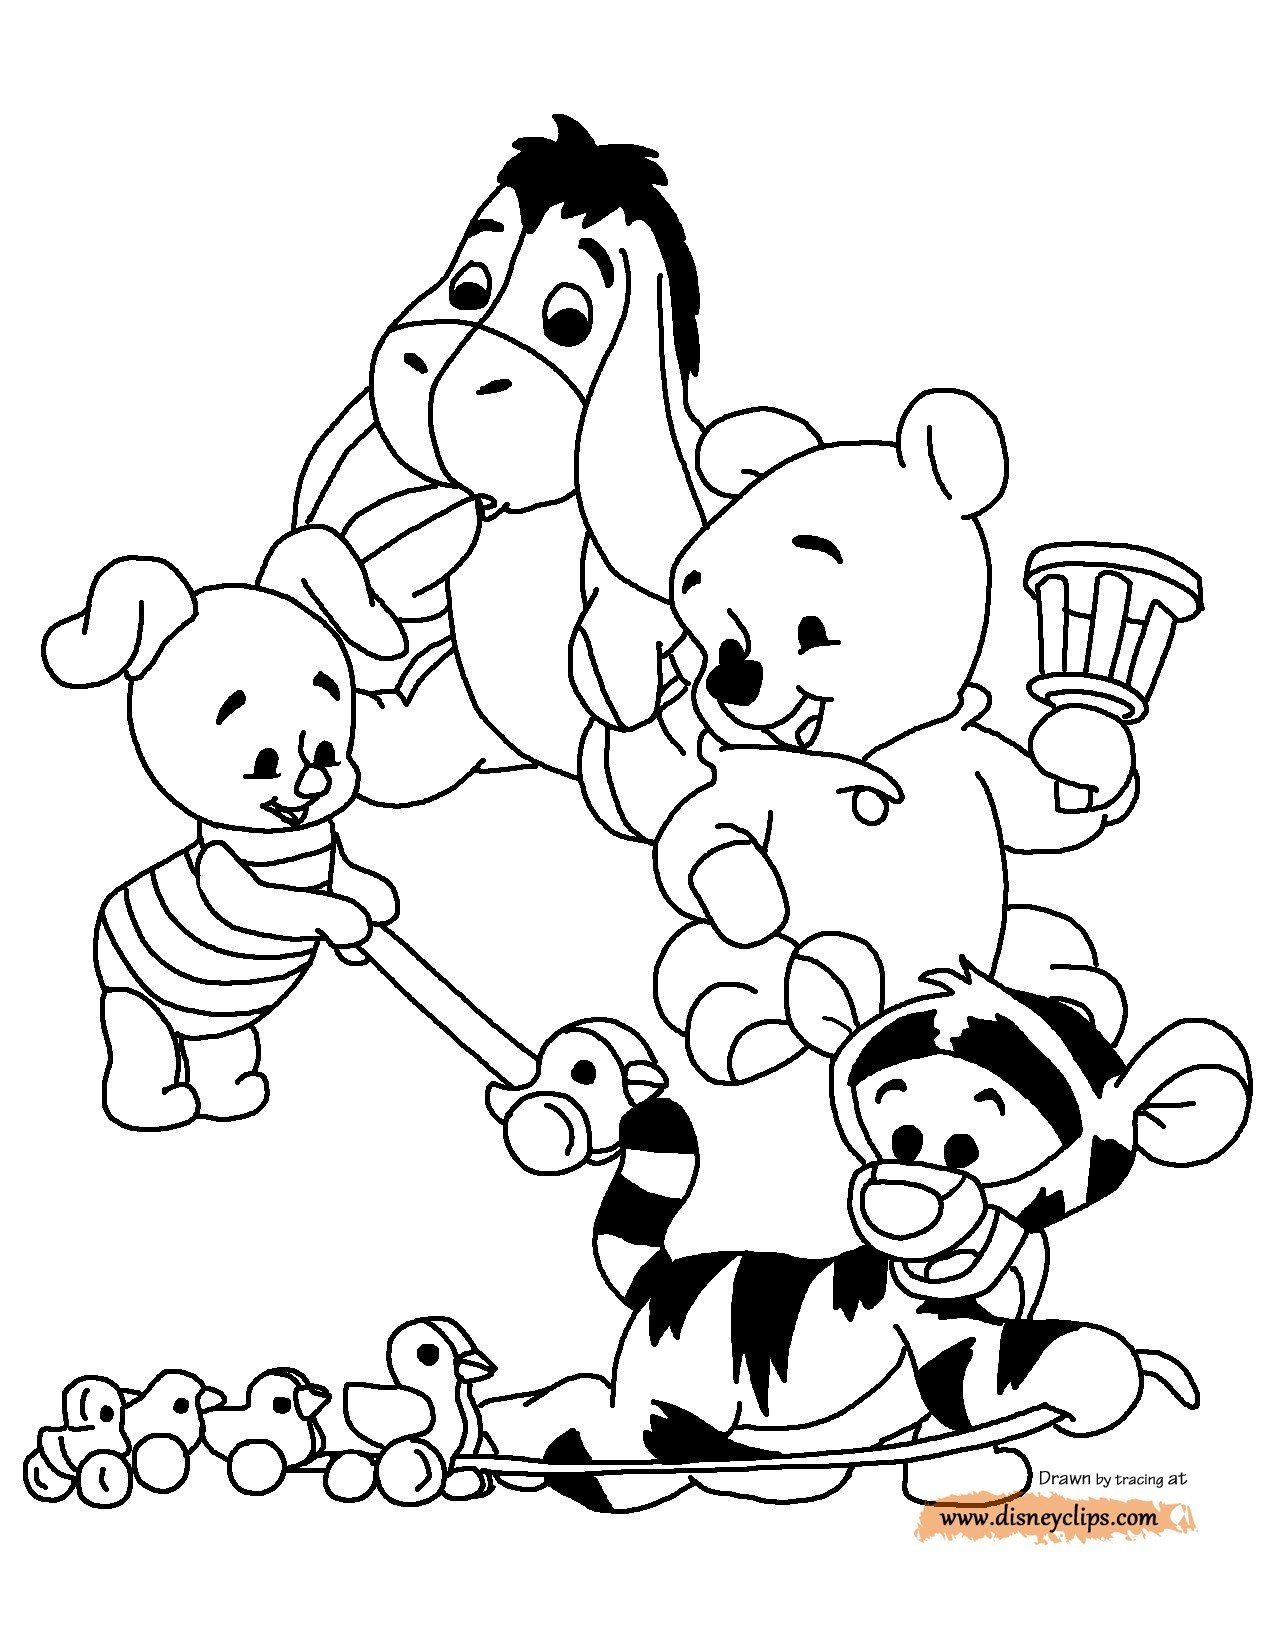 Winnie The Pooh Coloring Pages Fresh Best Baby Tigger And Pooh Coloring Pages Kursknews Disney Coloring Pages Cute Winnie The Pooh Baby Coloring Pages